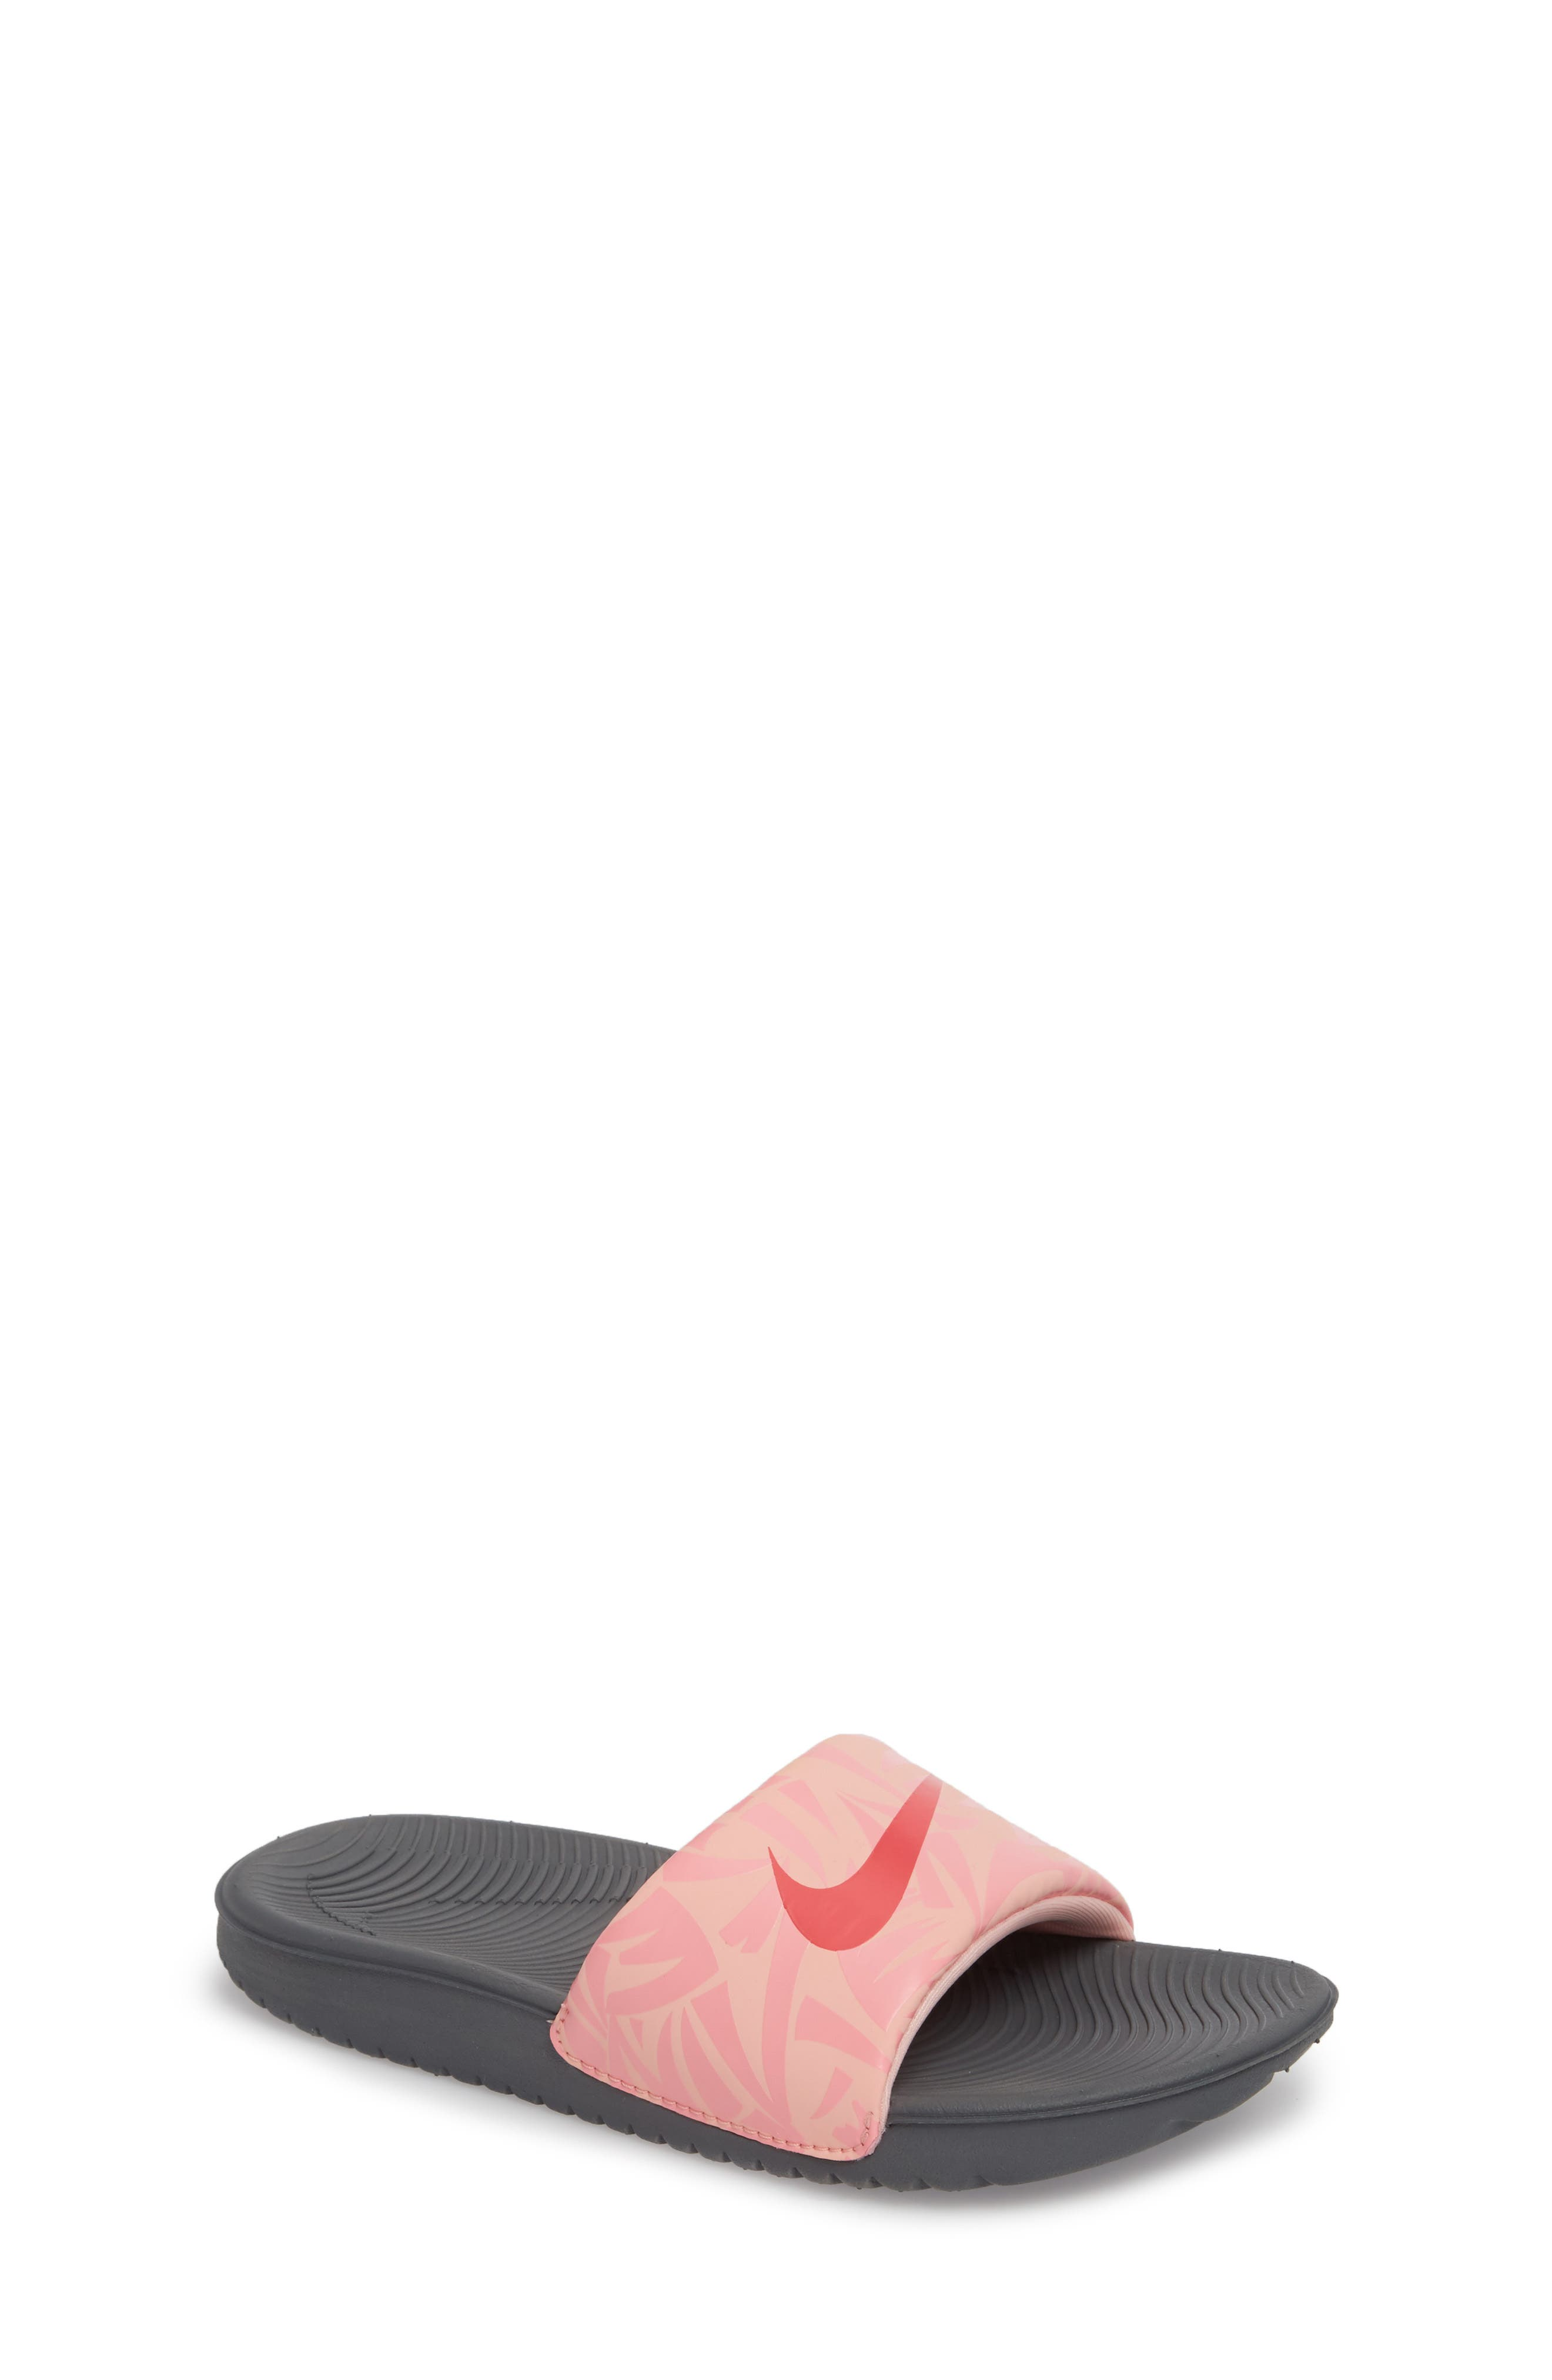 'Kawa' Print Slide Sandal,                         Main,                         color, 020